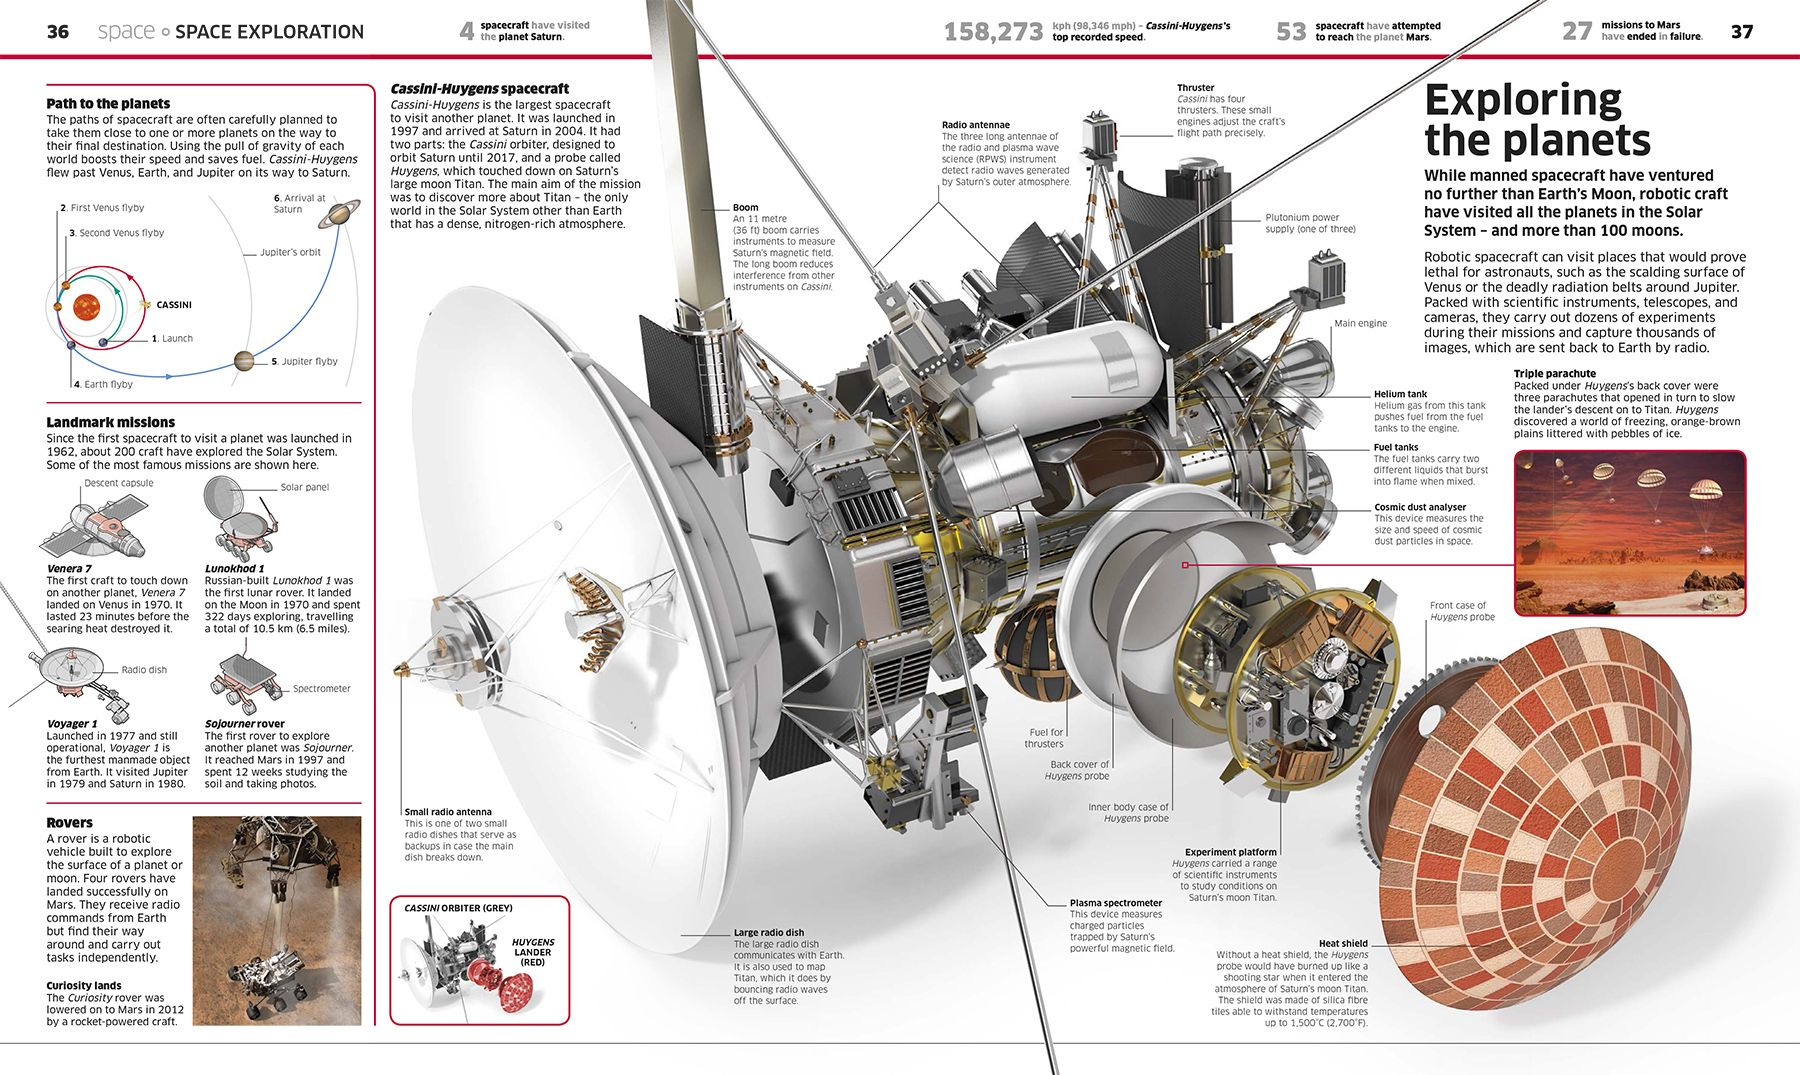 Dorling Kindersley Space Exploration Illustrations 3d Modelled Cassini Mission To Saturn Diagram Of The Spacecraft Lit And Rendered Jason Harding Productions Creative Animation Studio London